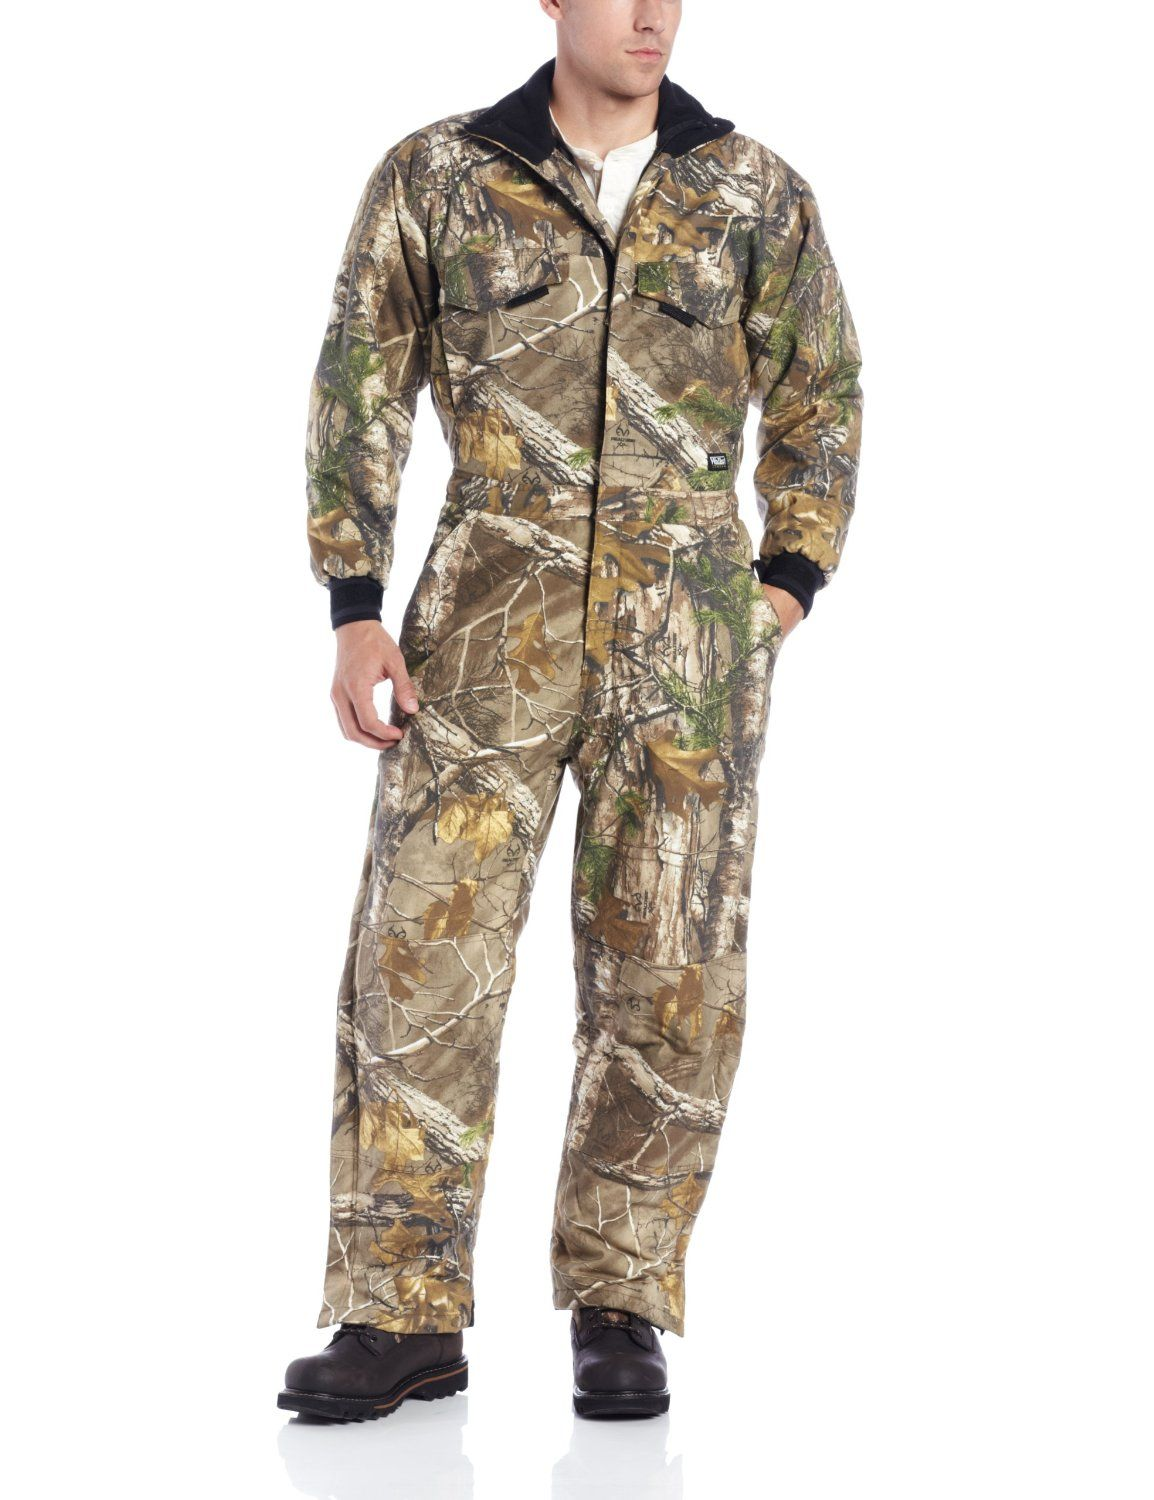 industries needs men s workwear clothing insulated on walls coveralls for men insulated id=14307